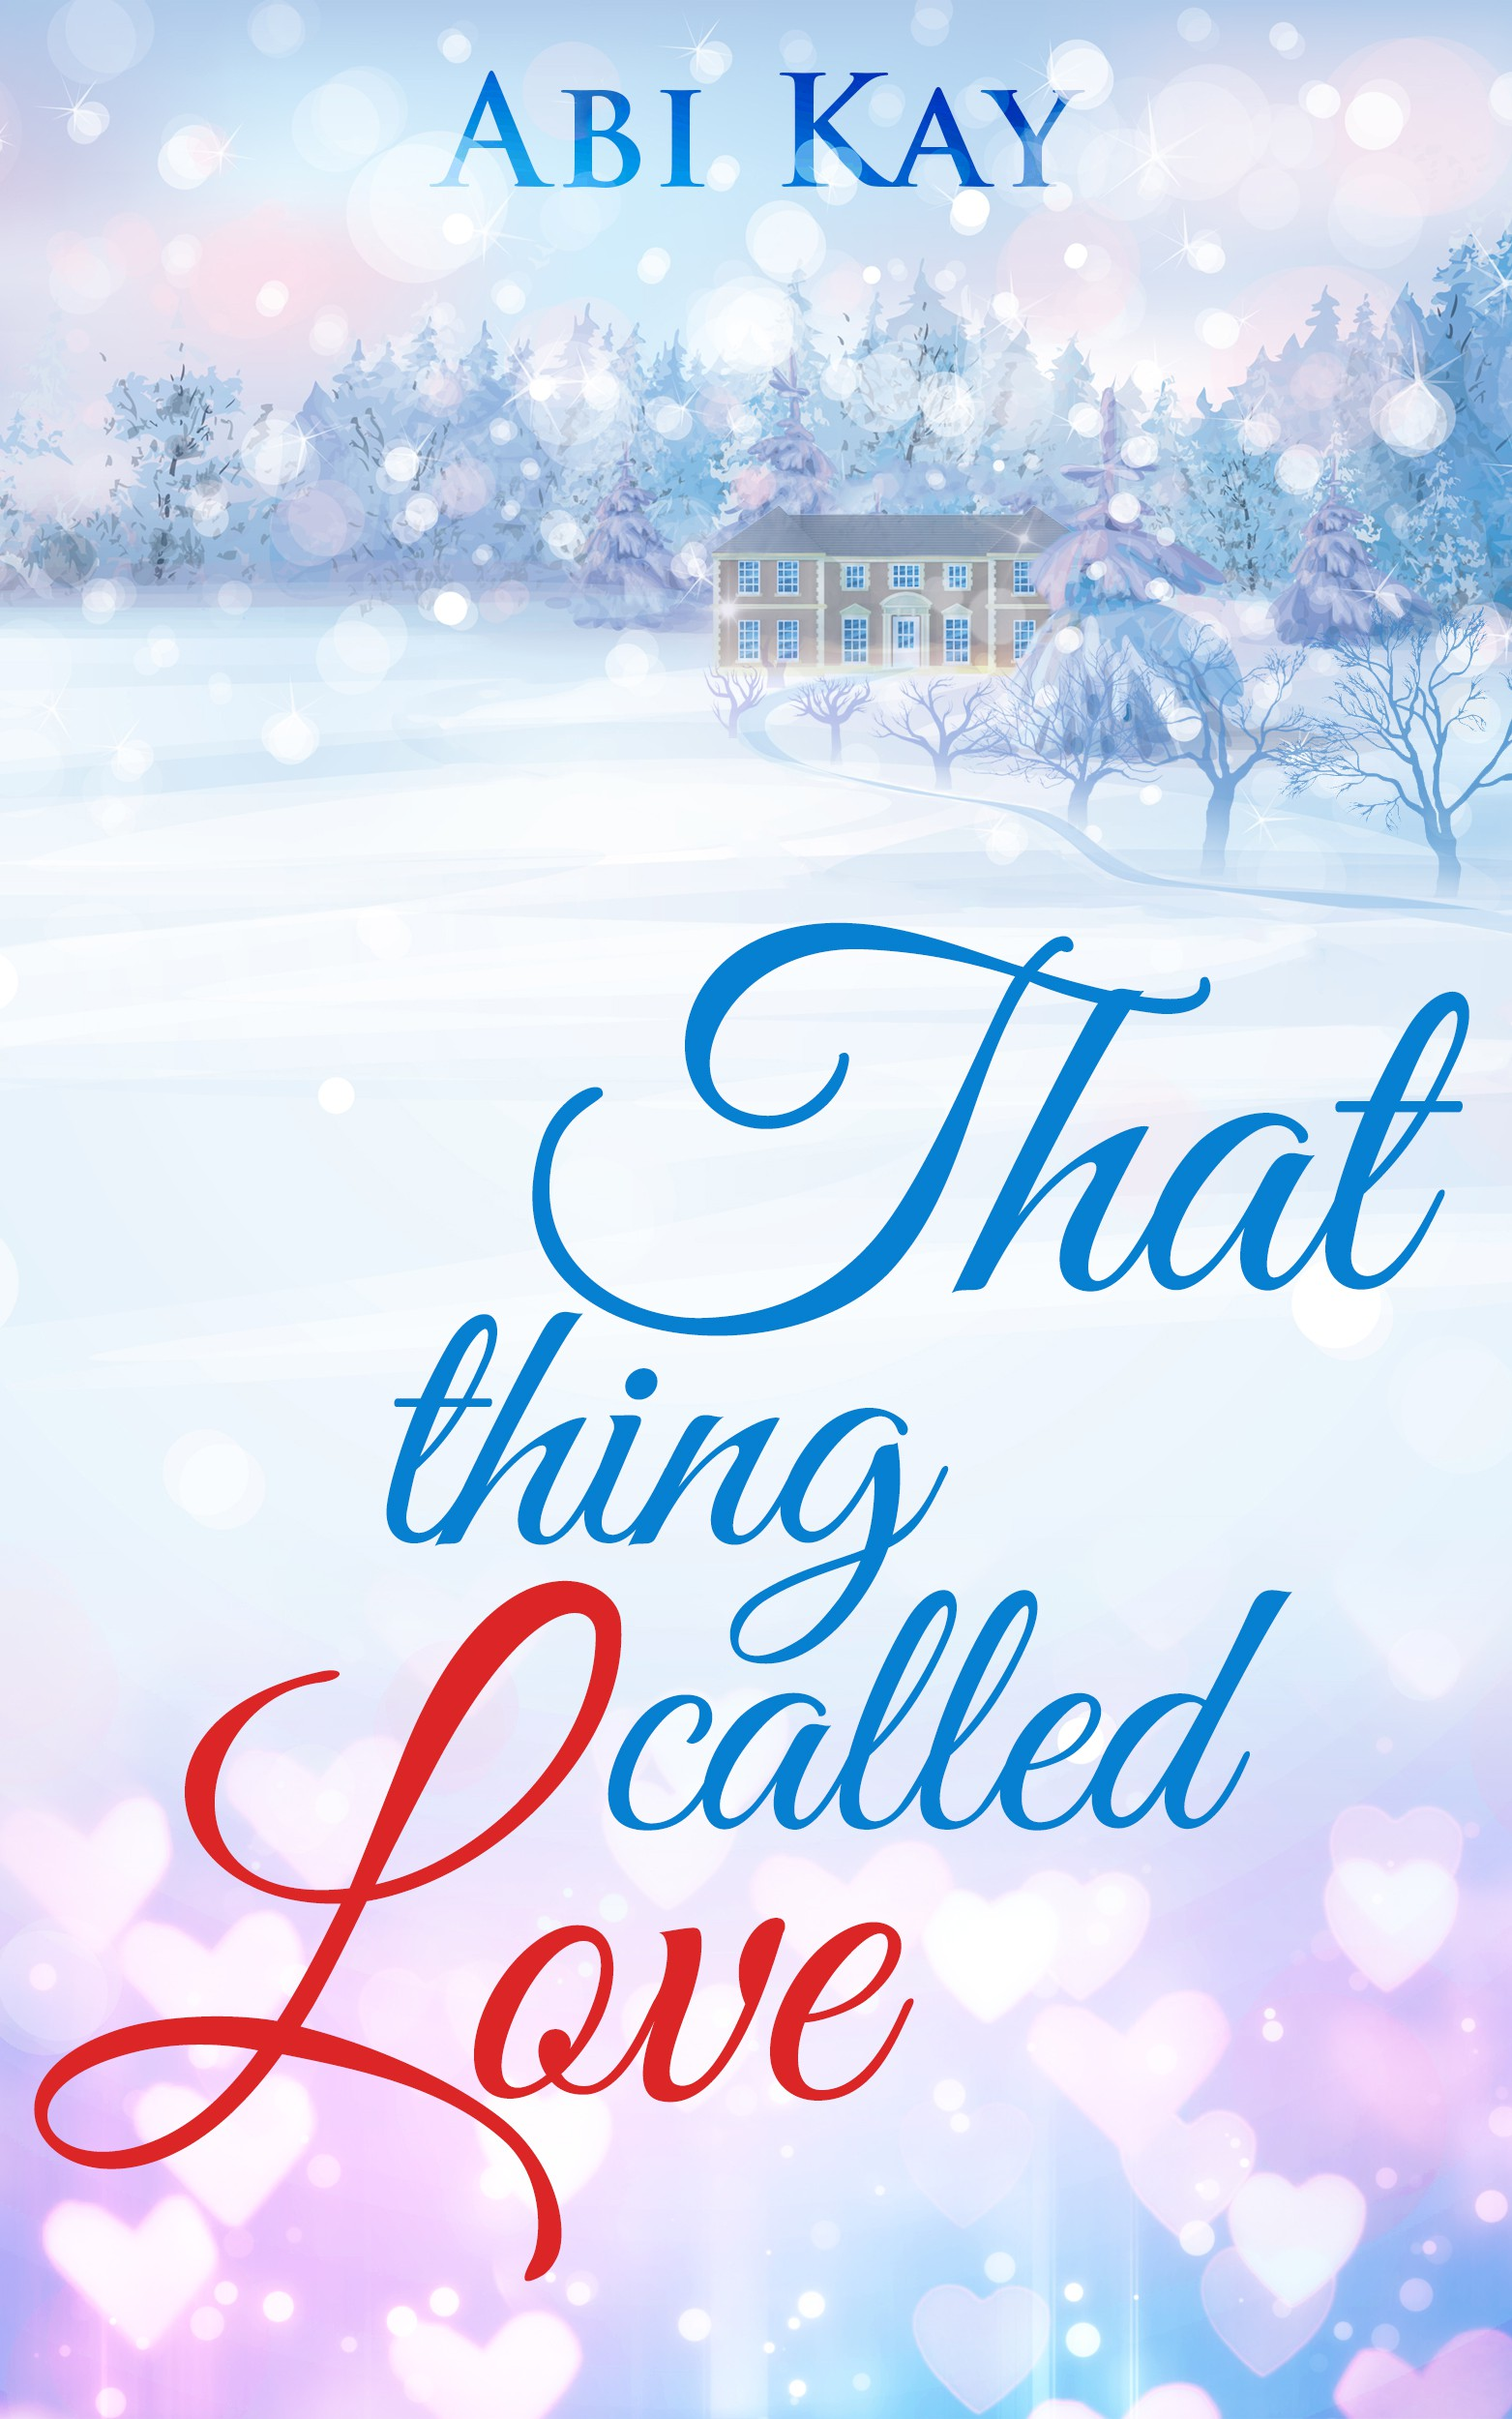 Book cover with a natural snowy scene and a warm Christmas feel